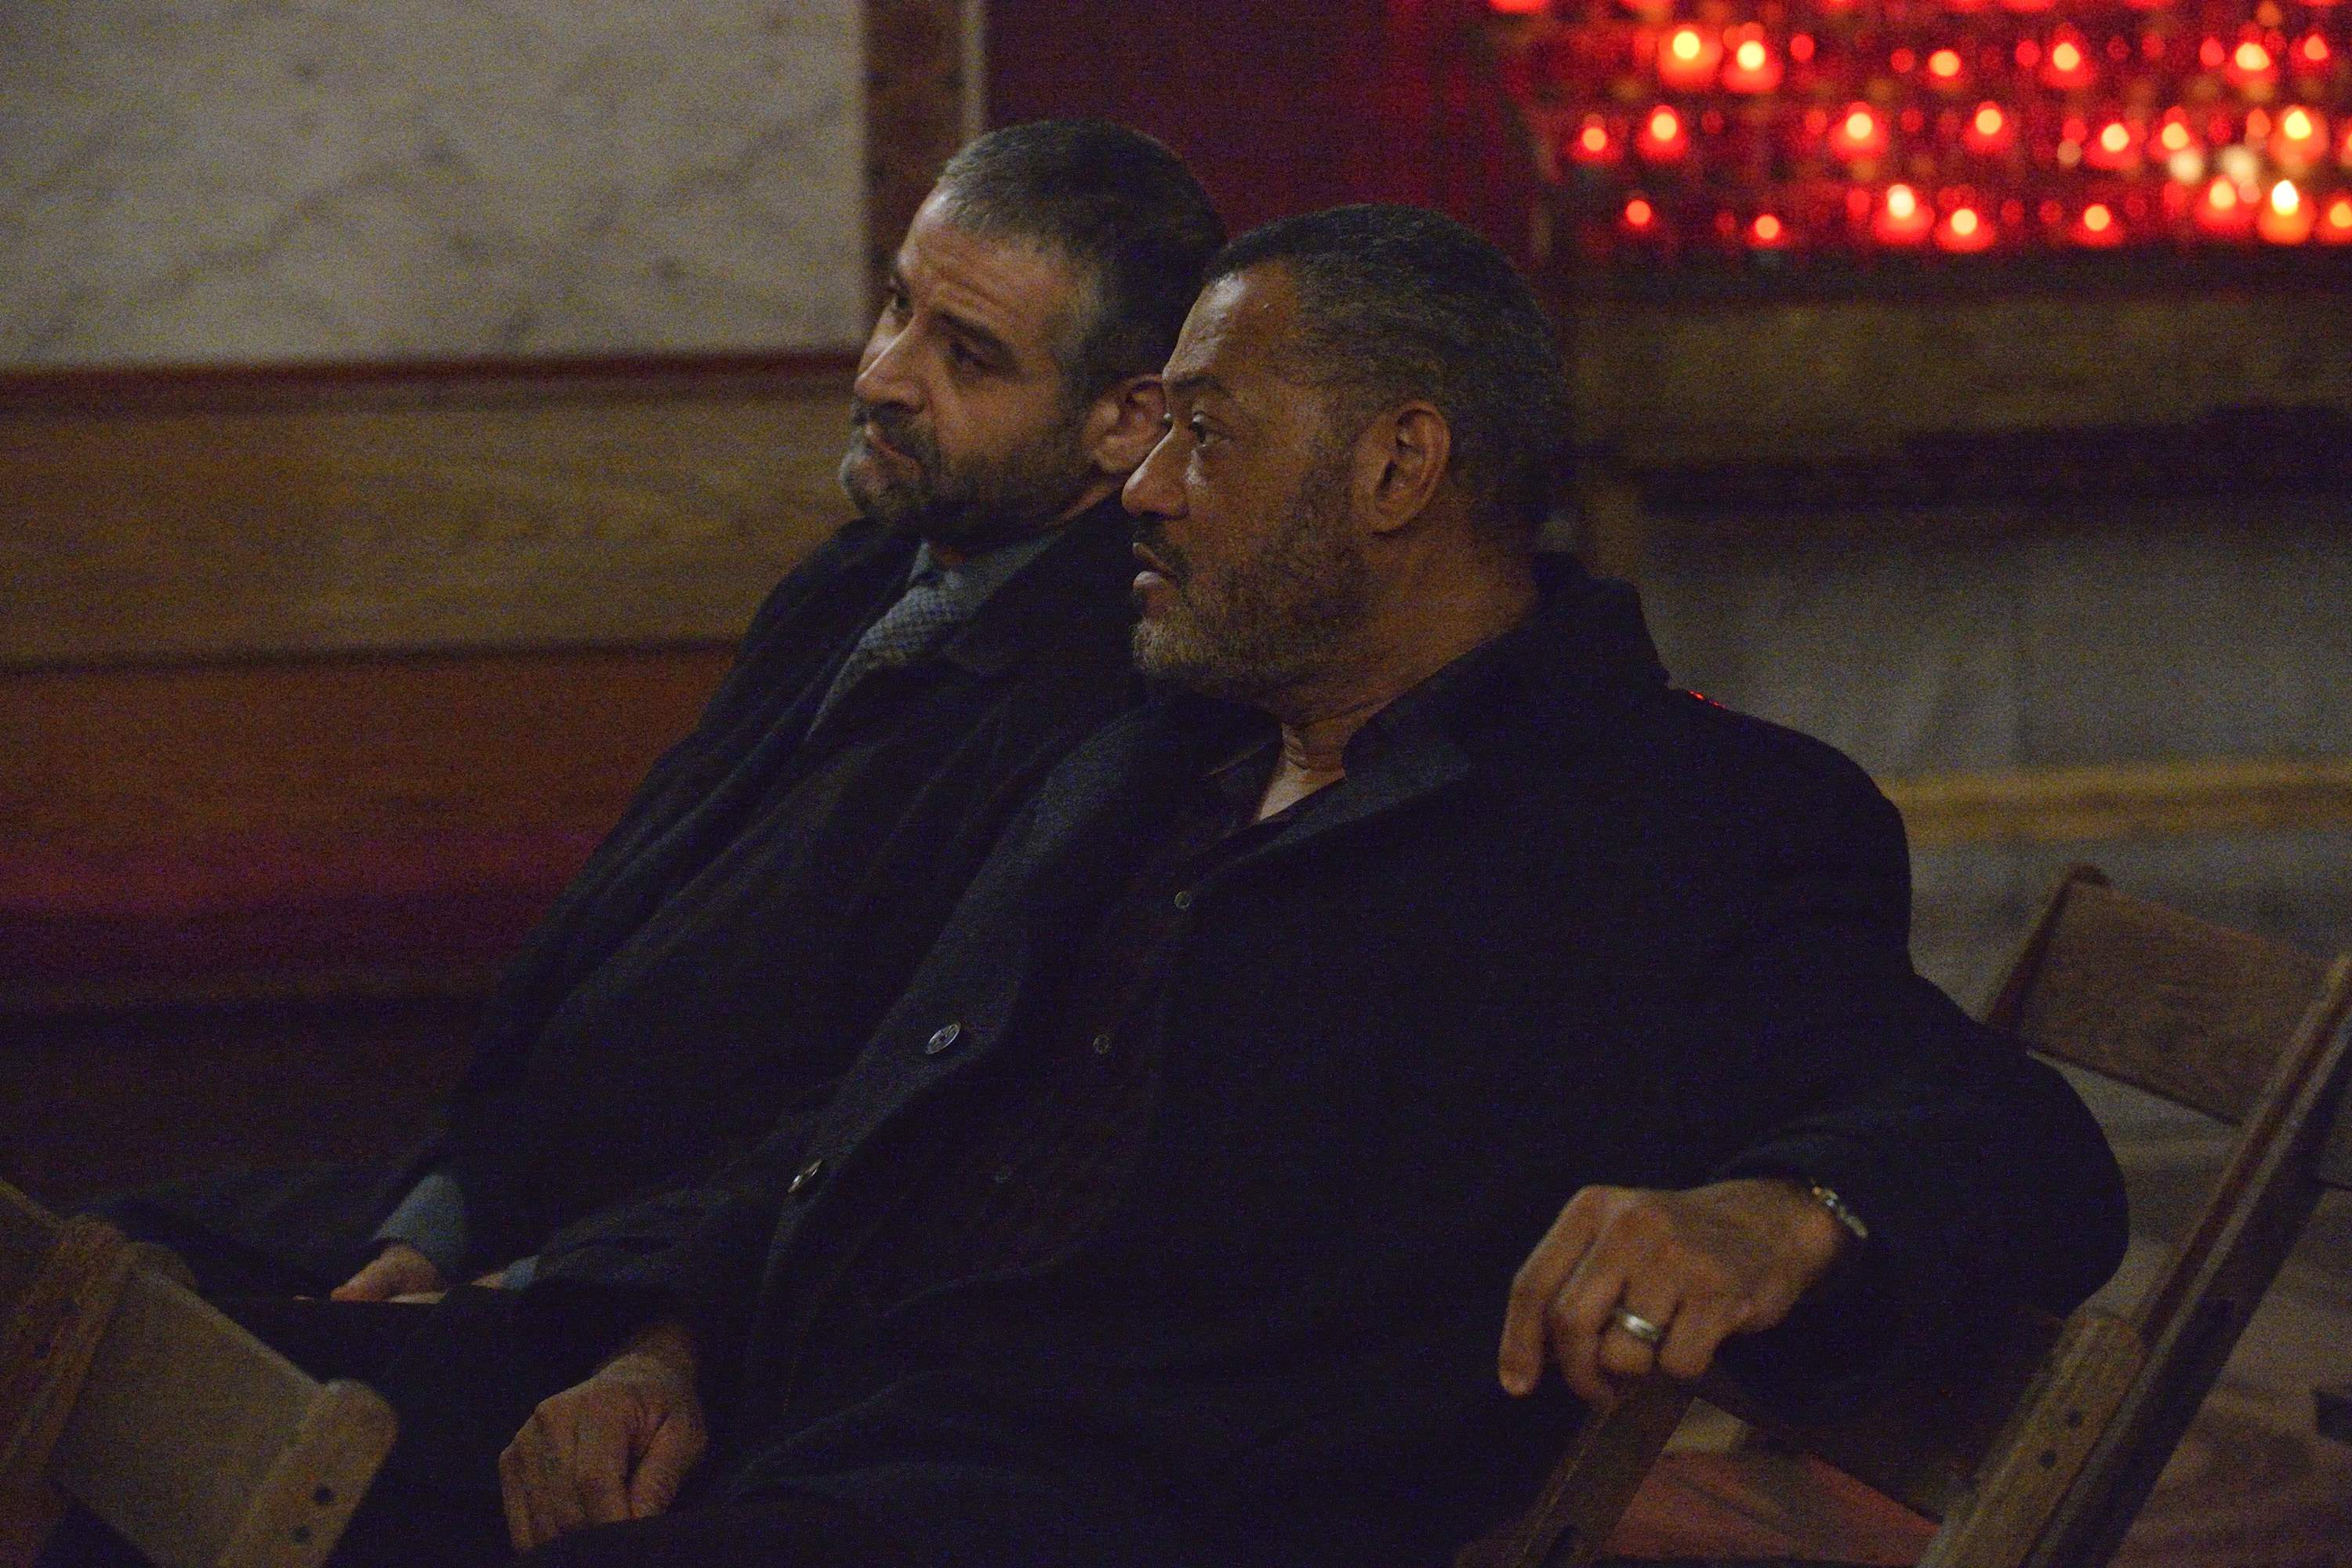 Inspector Pazzi and Jack discuss Hannibal in the chapel in Italy